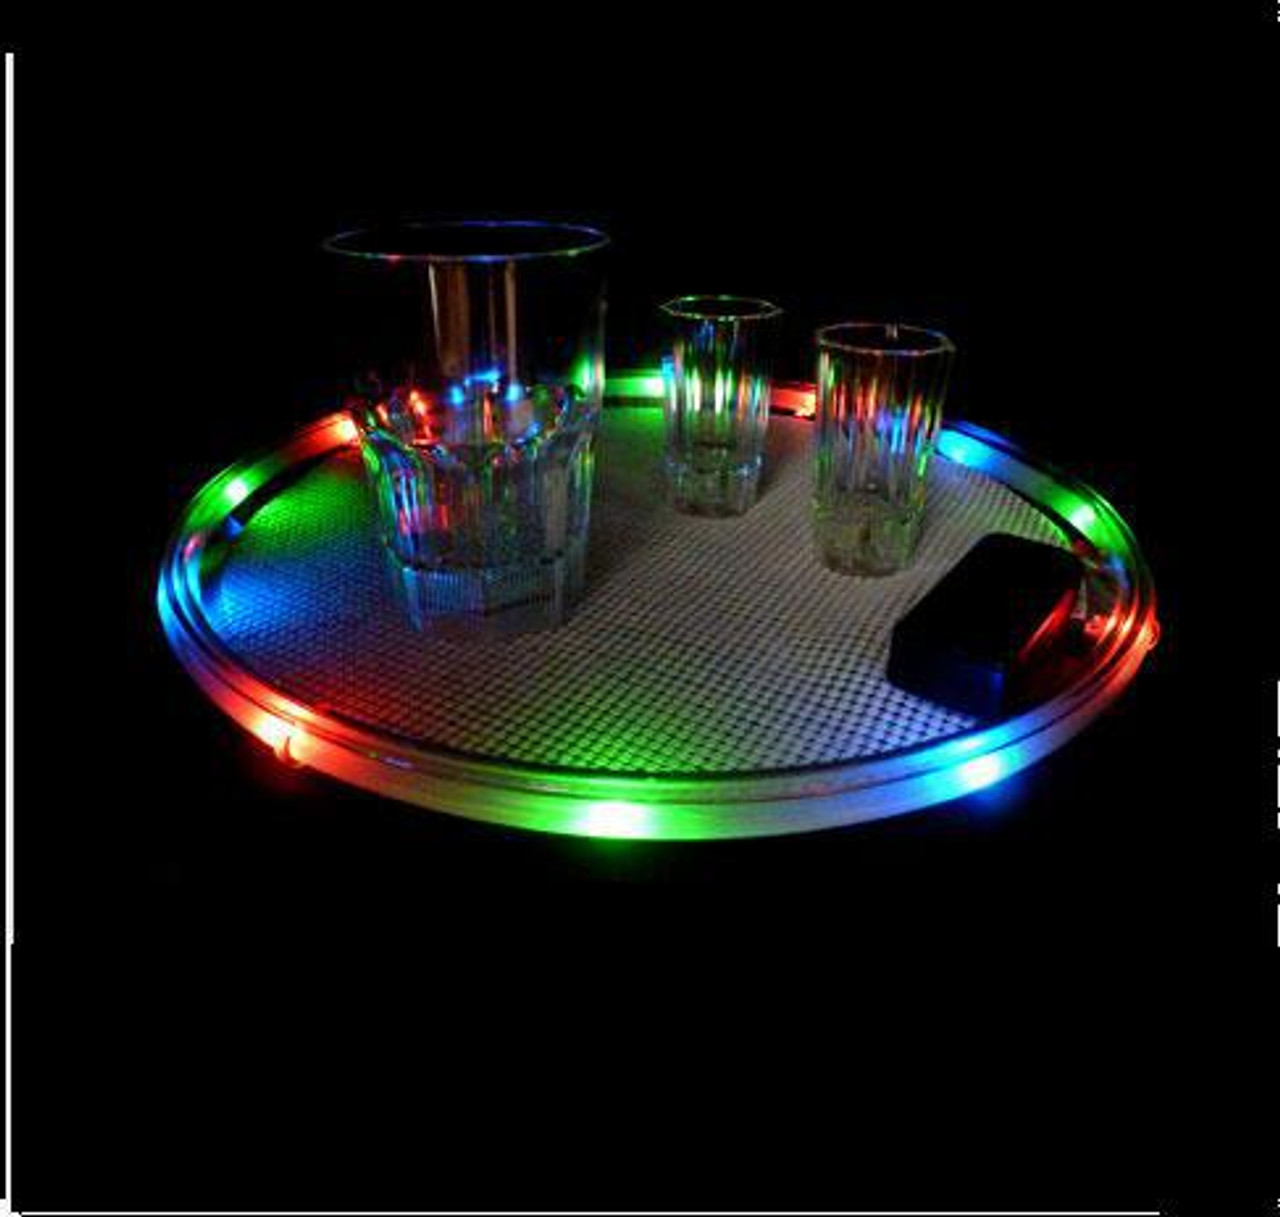 LED, Caddy, serving, tray, service tray, drink, light up, glow, neon, bandeja